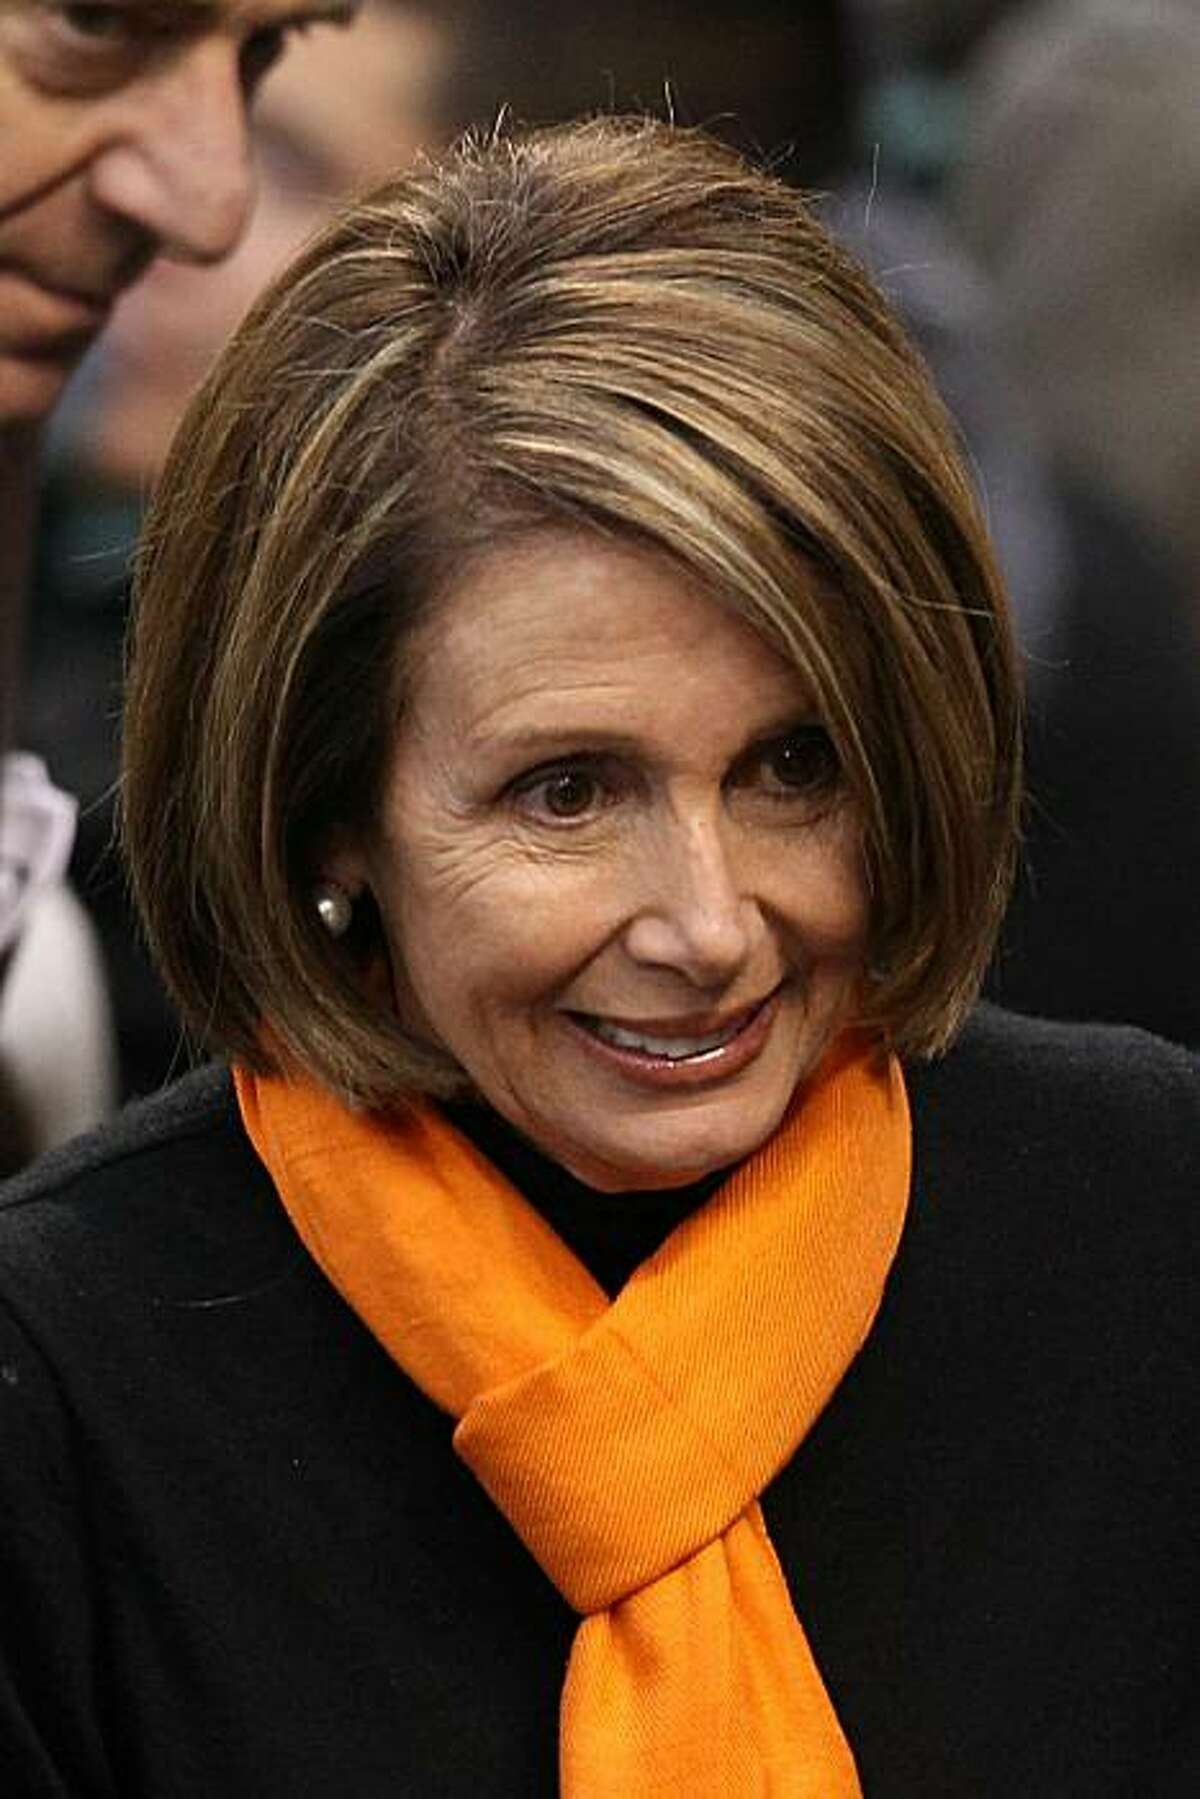 SAN FRANCISCO - OCTOBER 27: U.S. Speaker of the House Rep. Nancy Pelosi (D-CA) attends Game One of the 2010 MLB World Series at AT&T Park on October 27, 2010 in San Francisco, California.